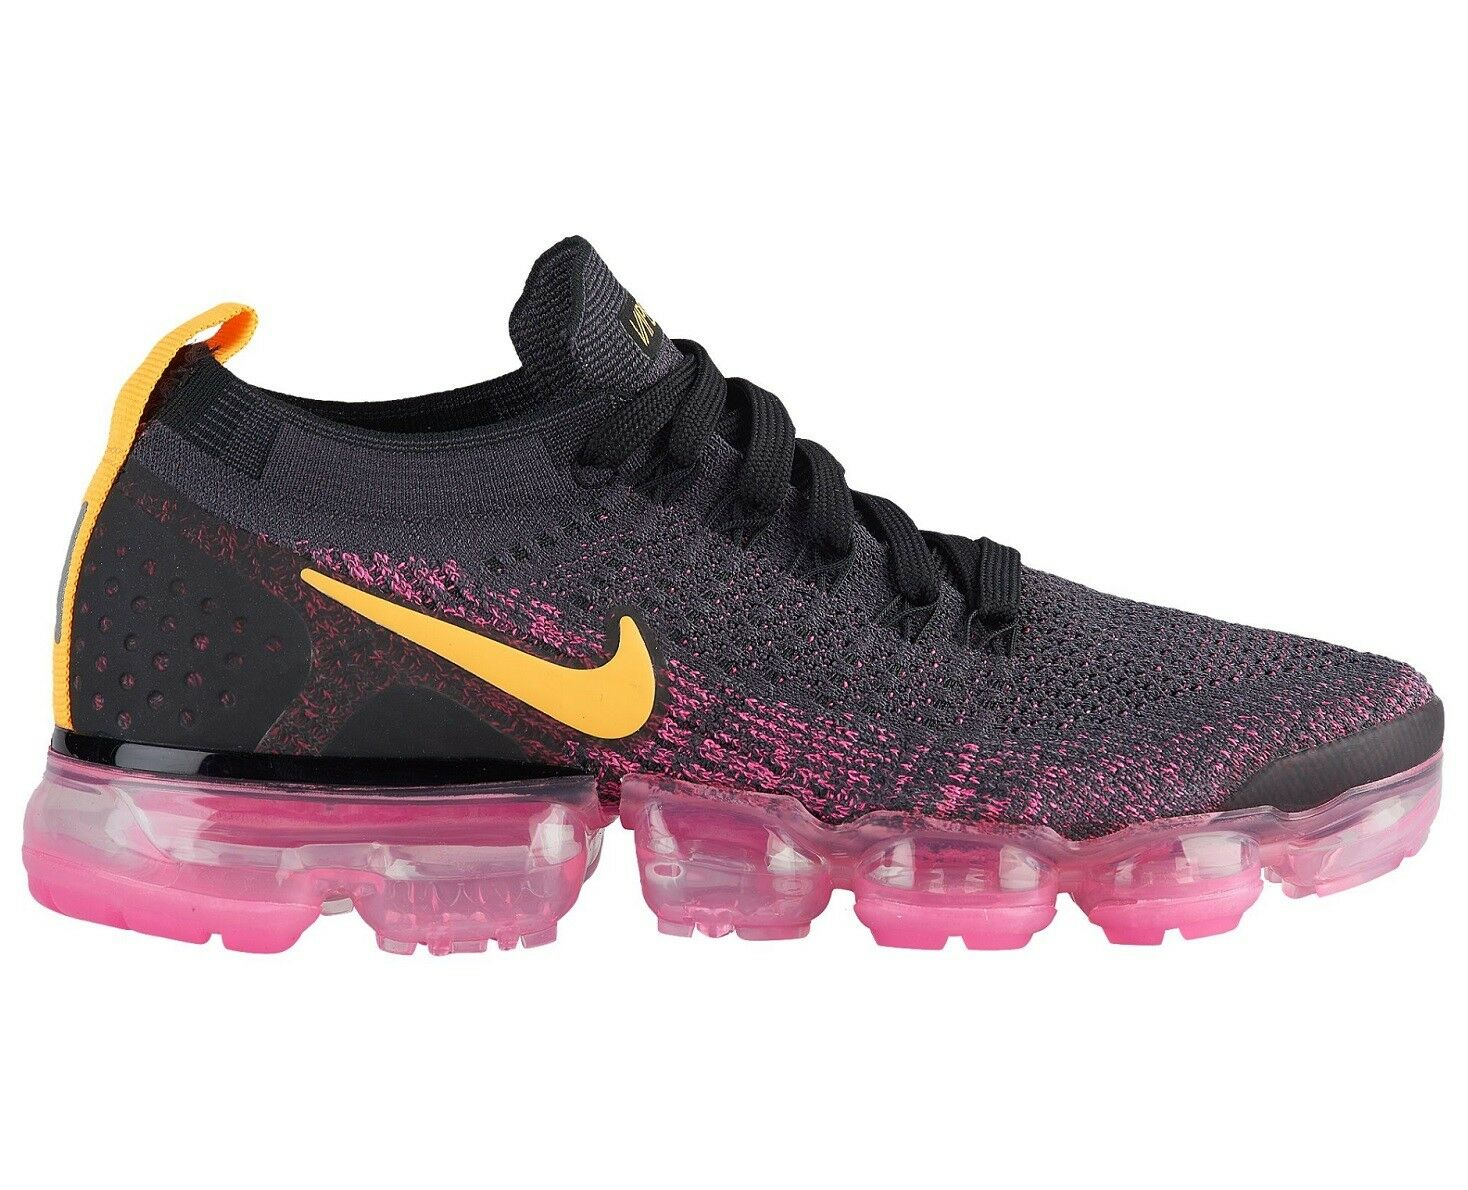 Nike Air Vapormax Flyknit 2 Womens 942843-008 Grey Pink Running shoes Size 6.5